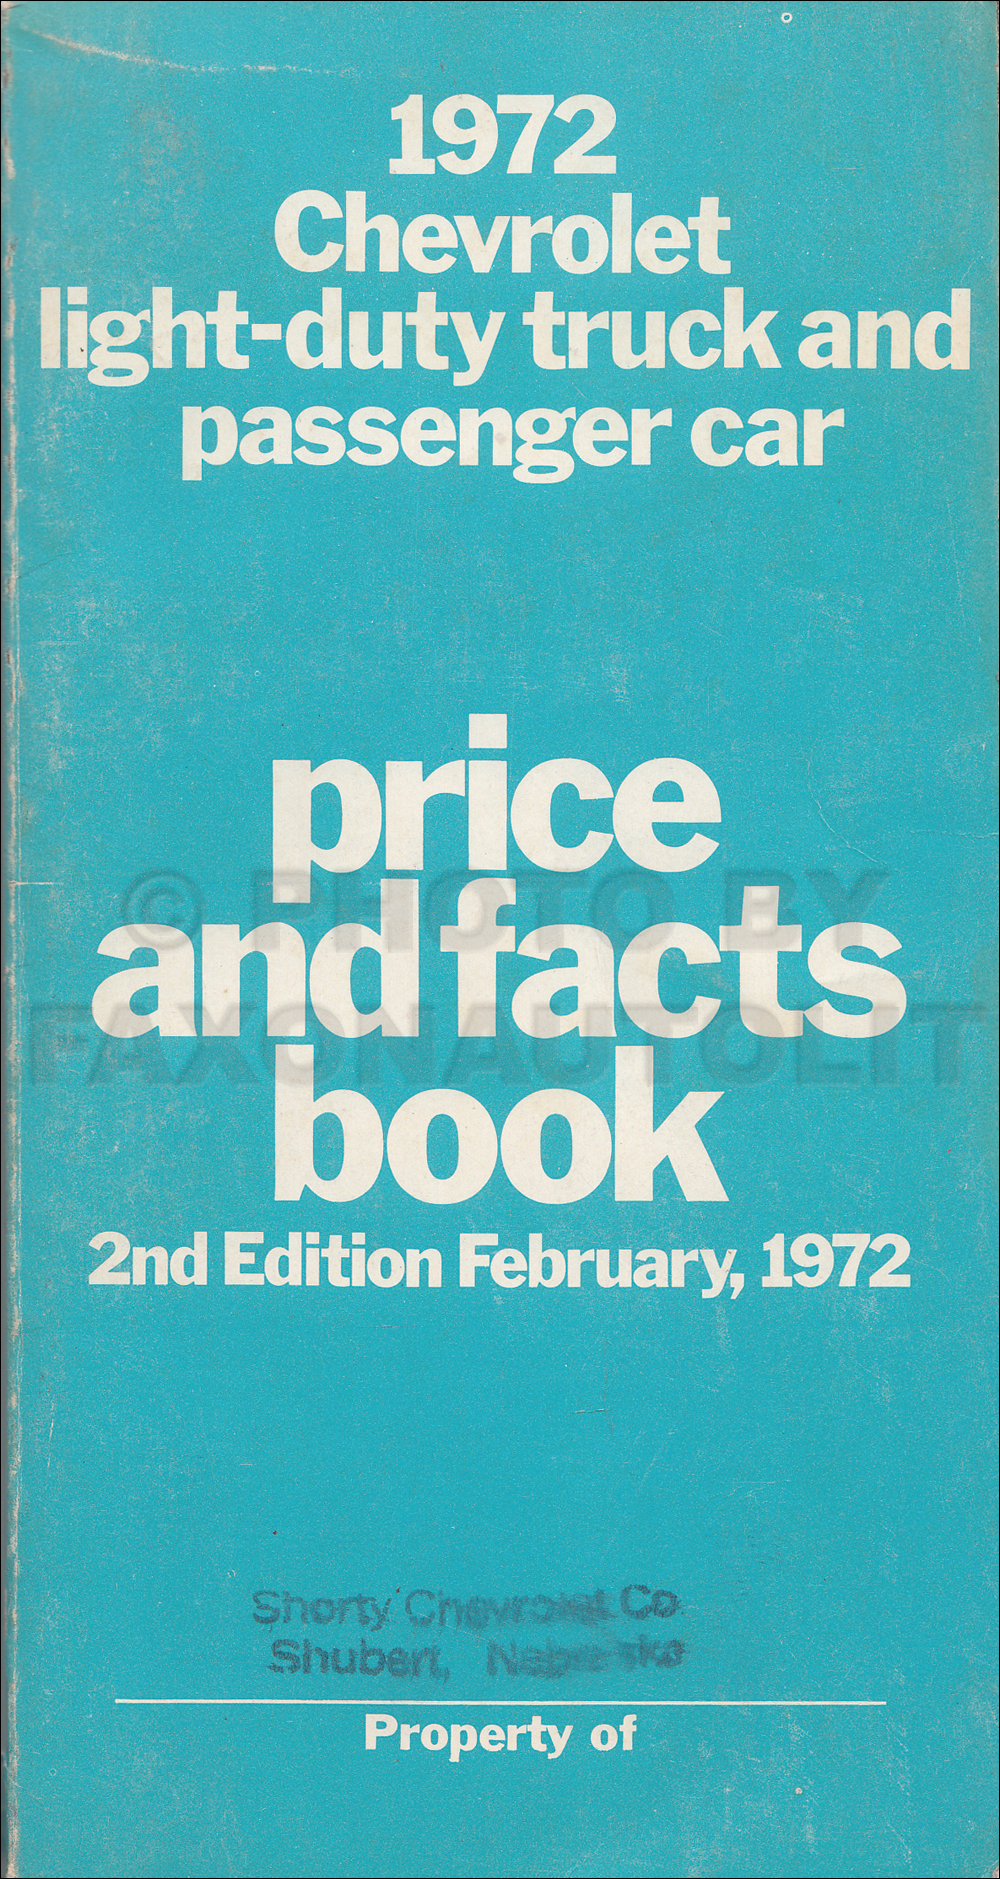 1972 Chevrolet Pocket Facts Book Original Chevy